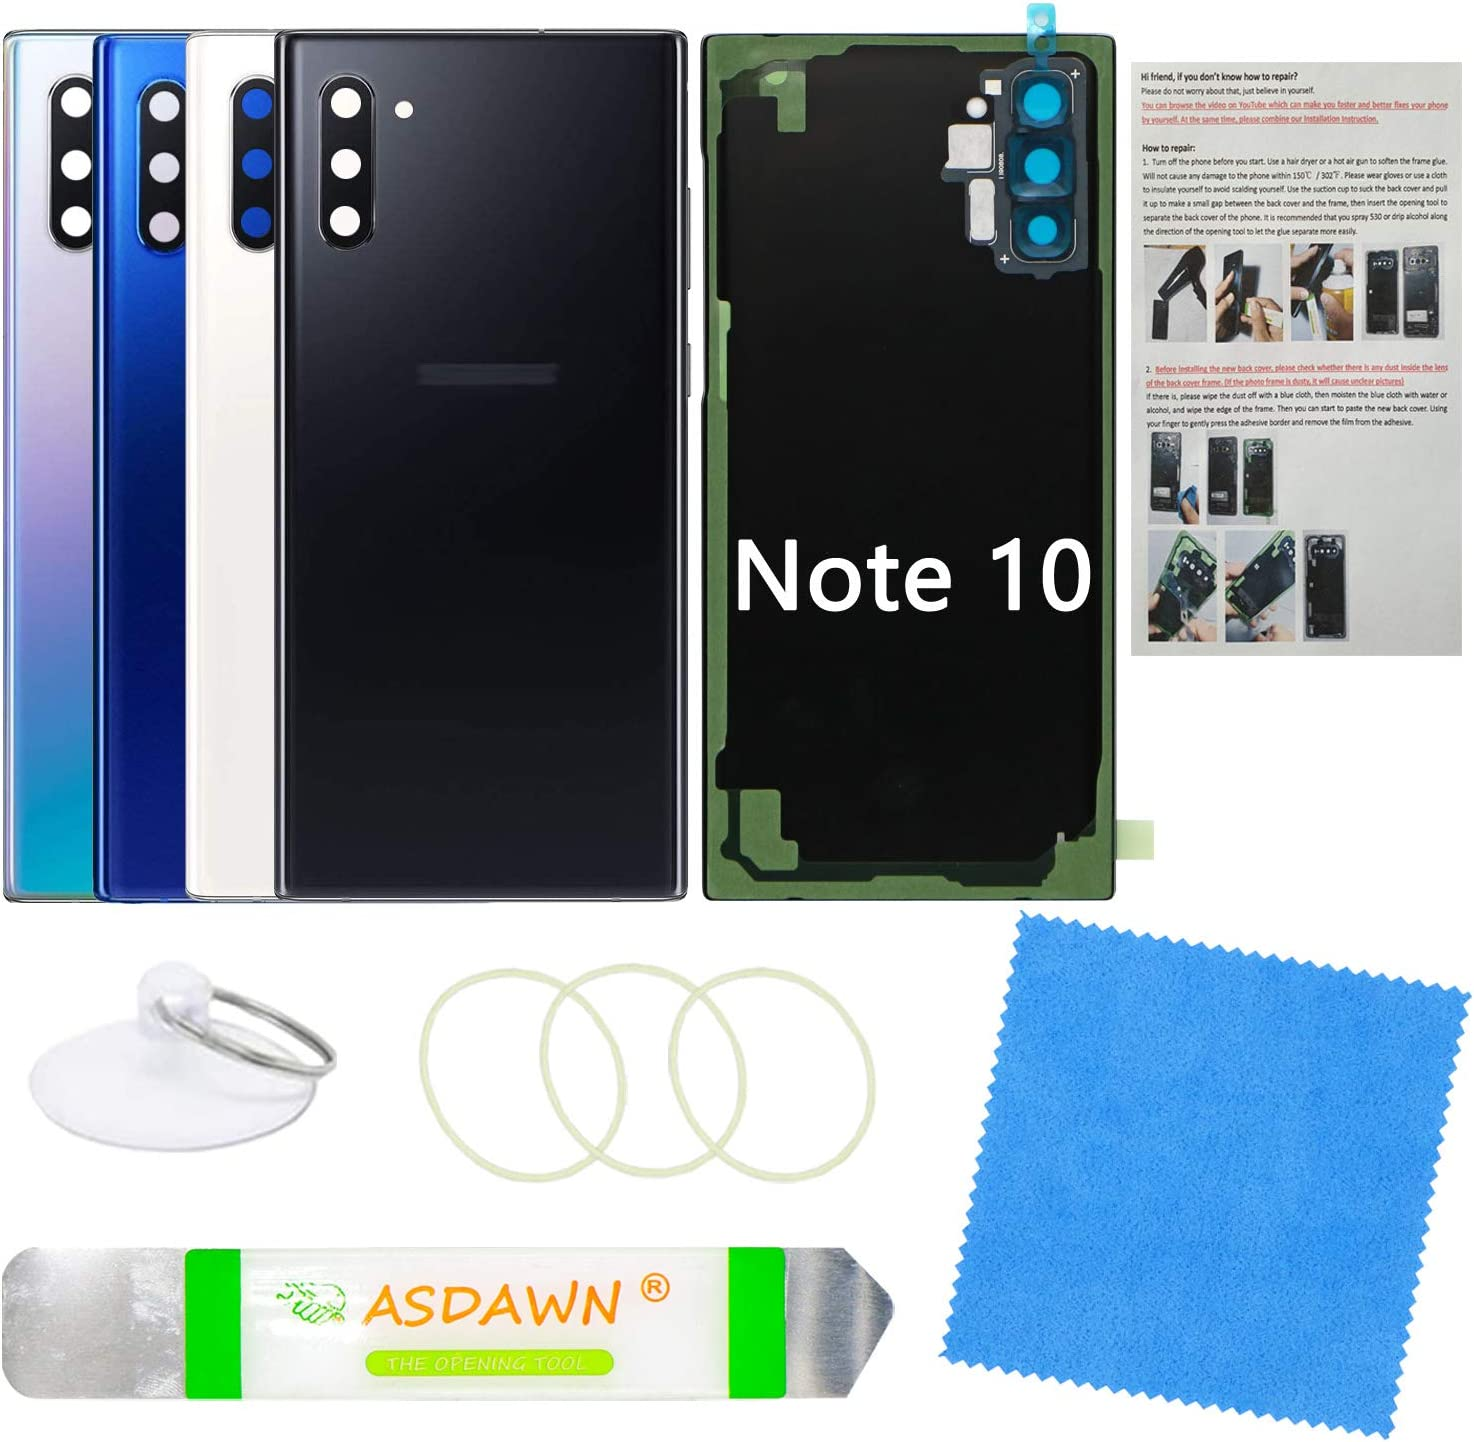 Galaxy Note 10 Back Cover Glass Replacement with Pre-Installed Camera Lens + All The Adhesive + Installation Manual + Repair Tool Kit for Samsung Galaxy Note 10 SM-N970 All Carriers (Aura Black)